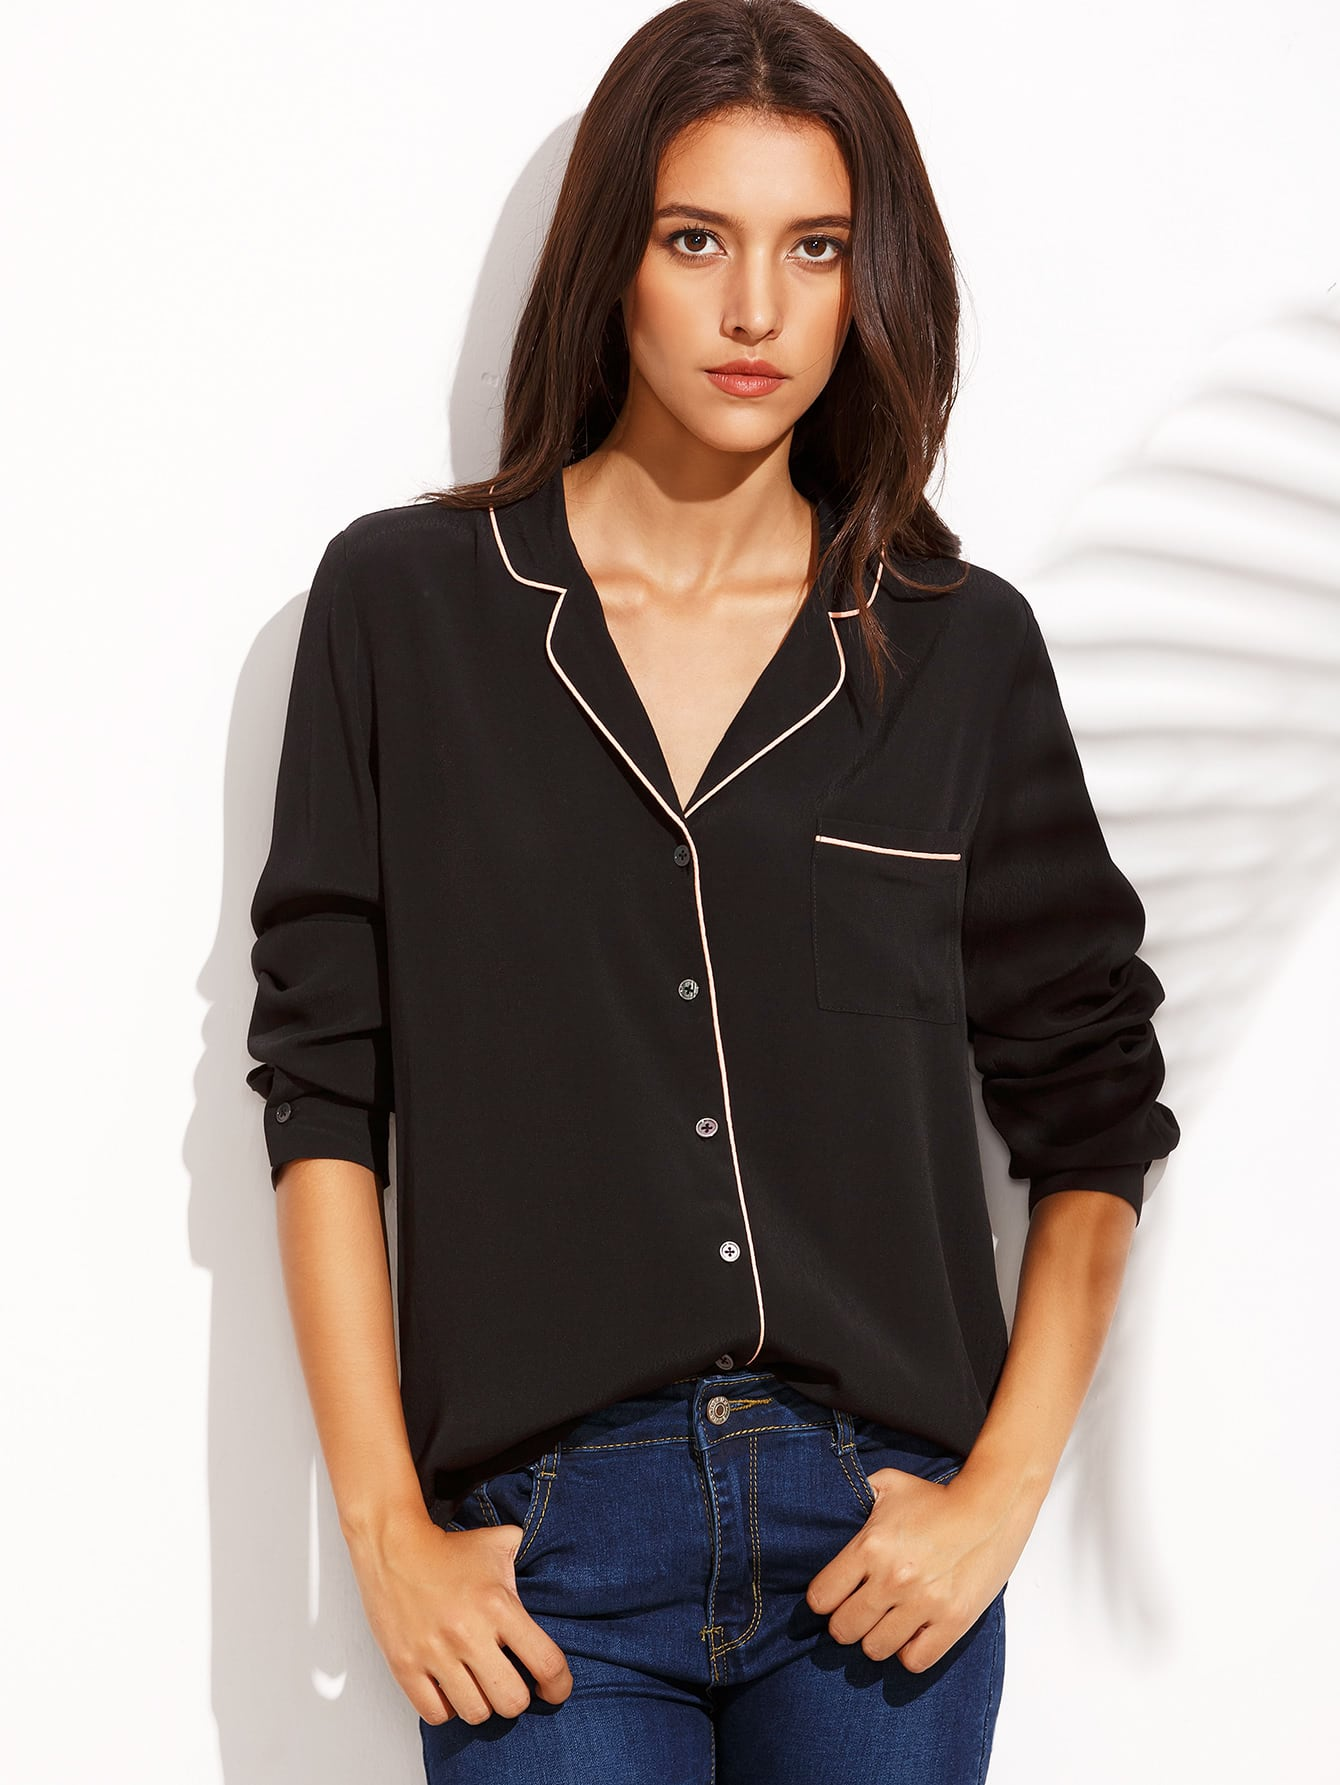 Black Lapel Button Front Long Sleeve BlouseBlack Lapel Button Front Long Sleeve Blouse<br><br>color: Black<br>size: L,M,S,XS